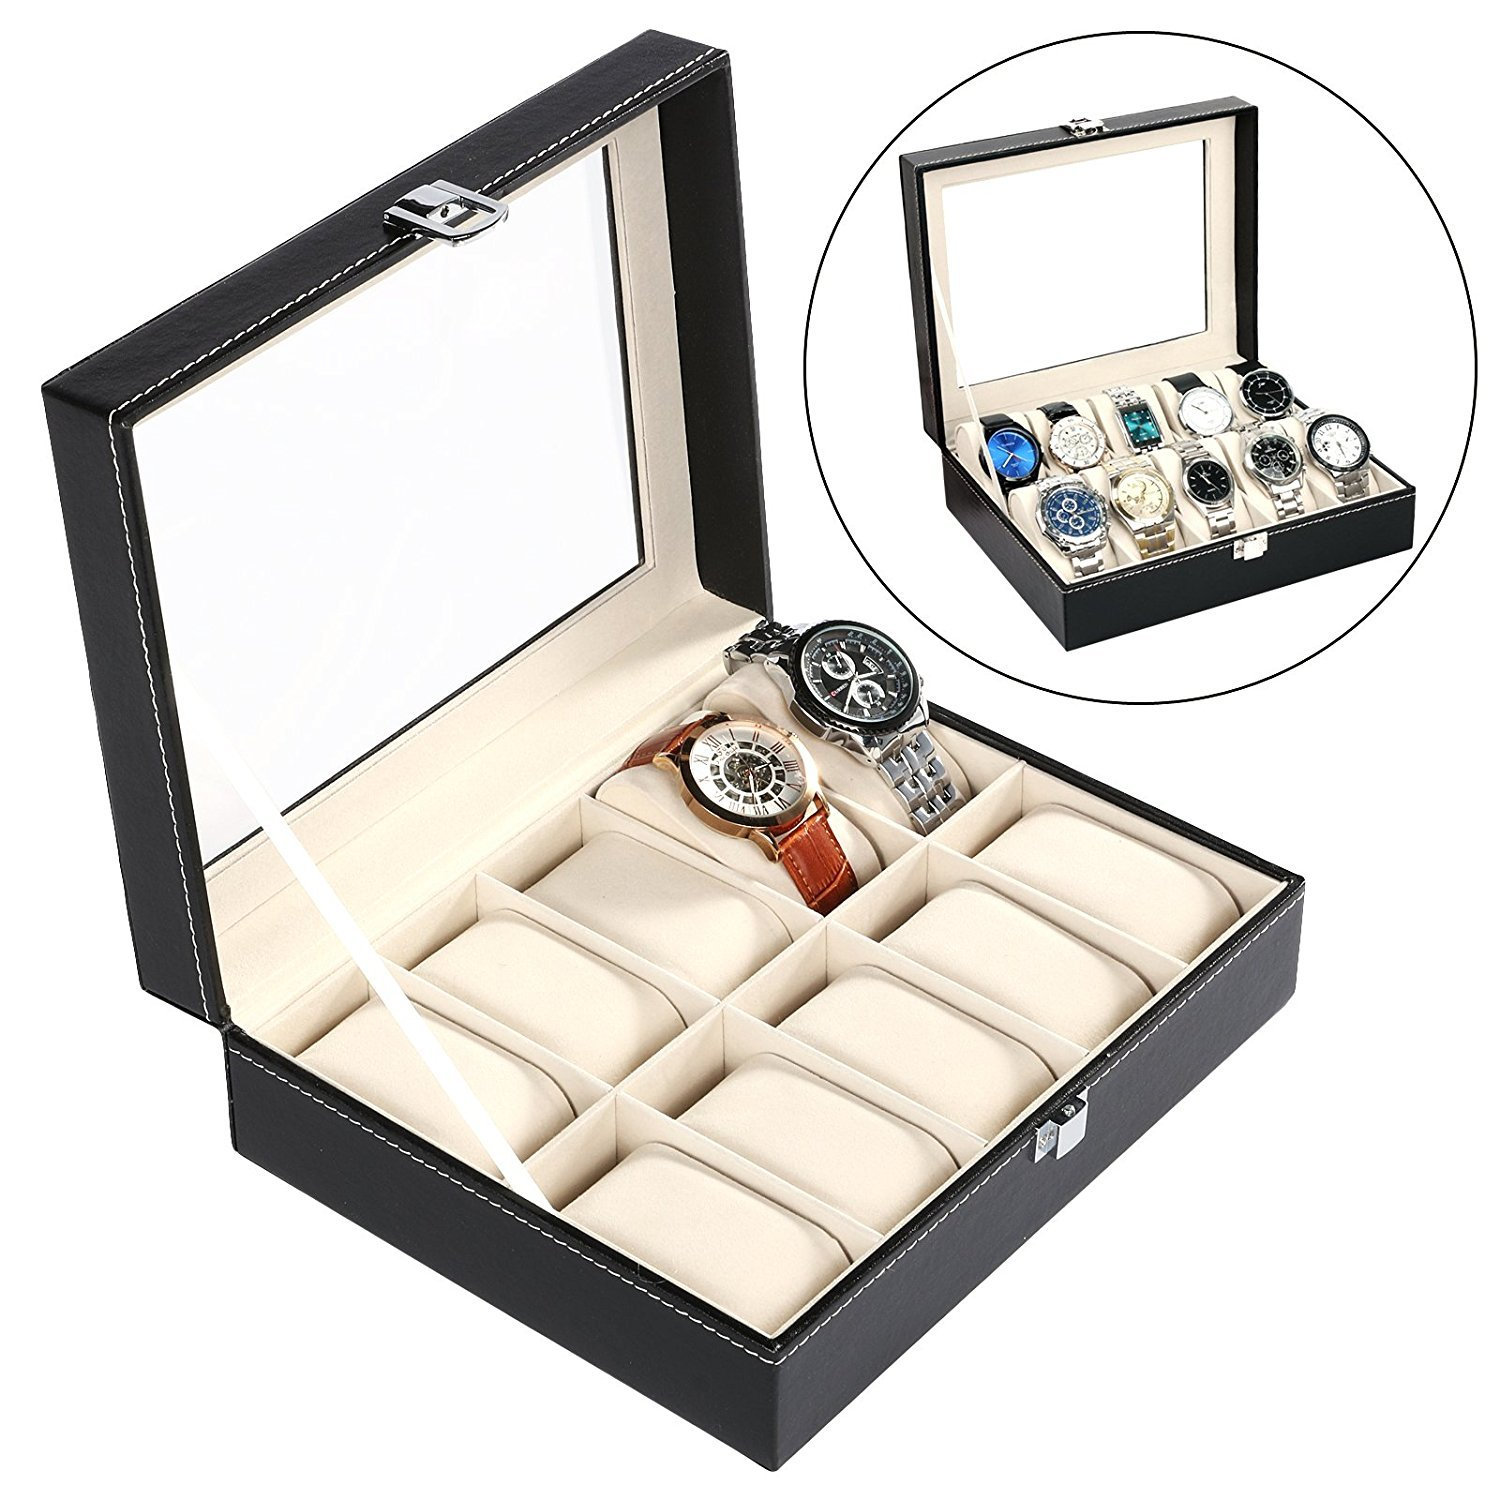 Mewalker 10 Slots Watch Display Box, Men's Watch Display Case Organizer Jewelry Storage Case Synthetic Faux Leather Framed with Glass Window & Metal Lock, Black (US STOCK)